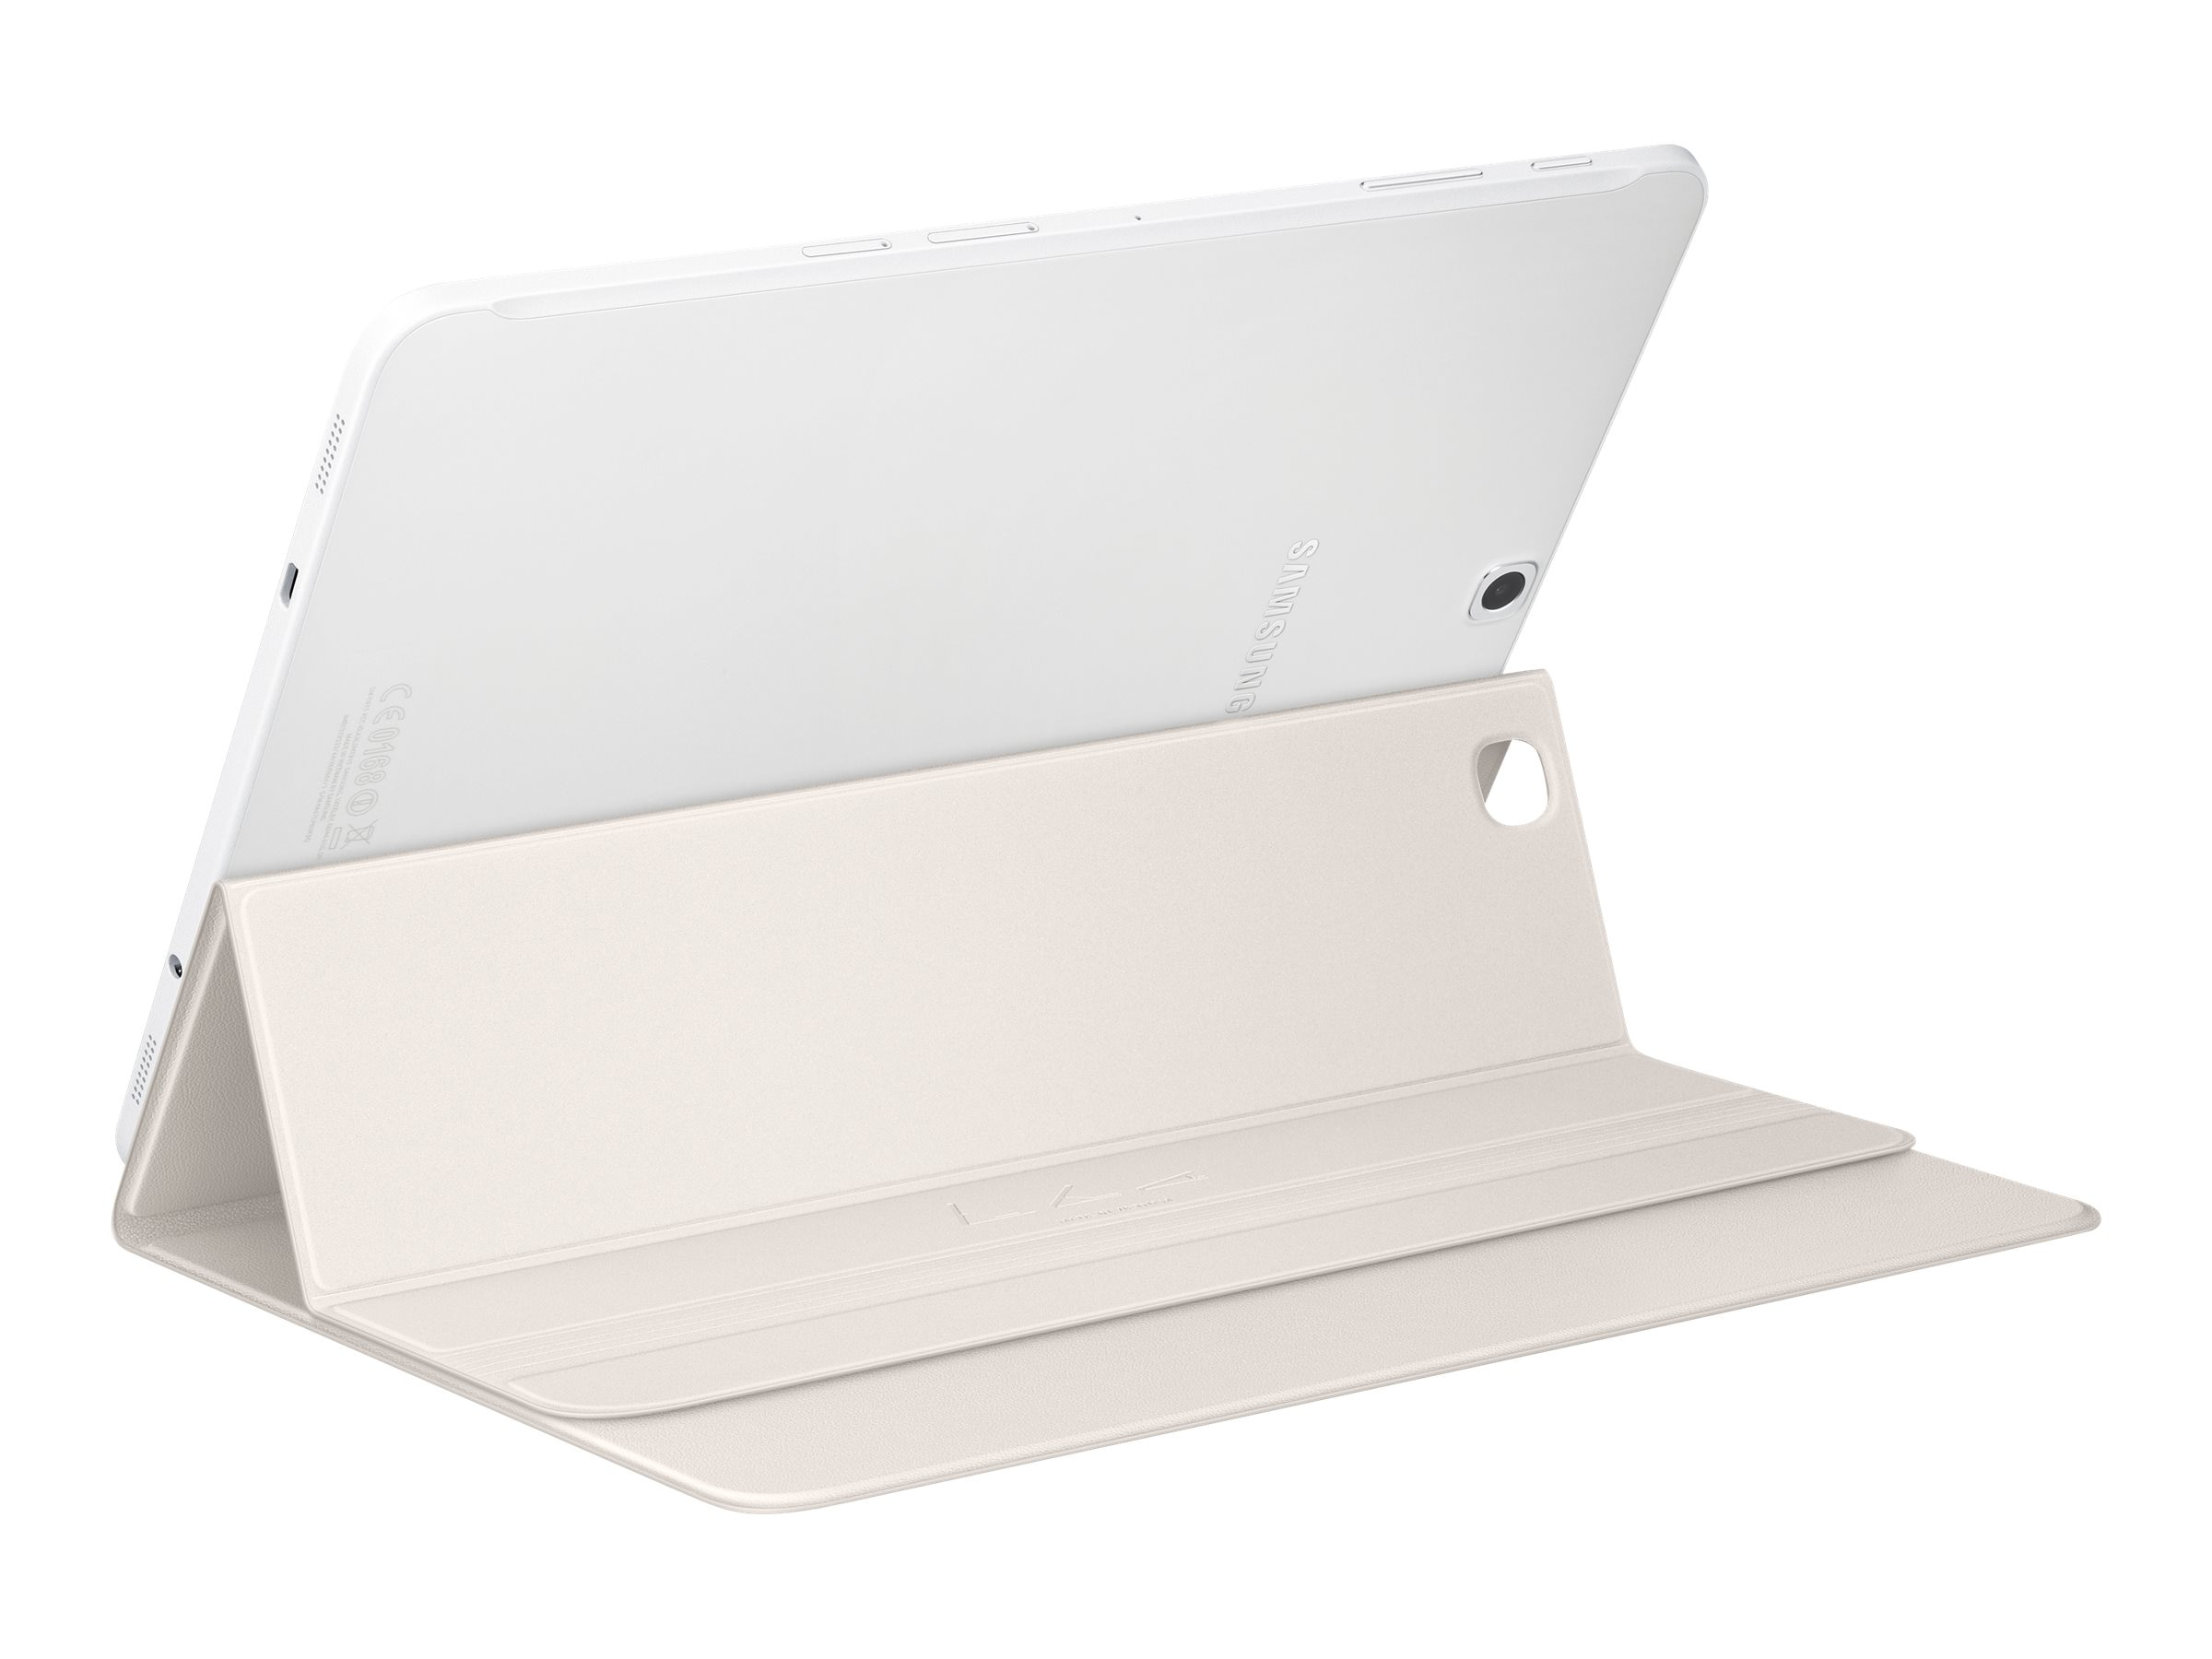 Samsung Book Cover for Galaxy Tab S2 9.7, White, EF-BT810PWEGUJ, 30654152, Carrying Cases - Tablets & eReaders